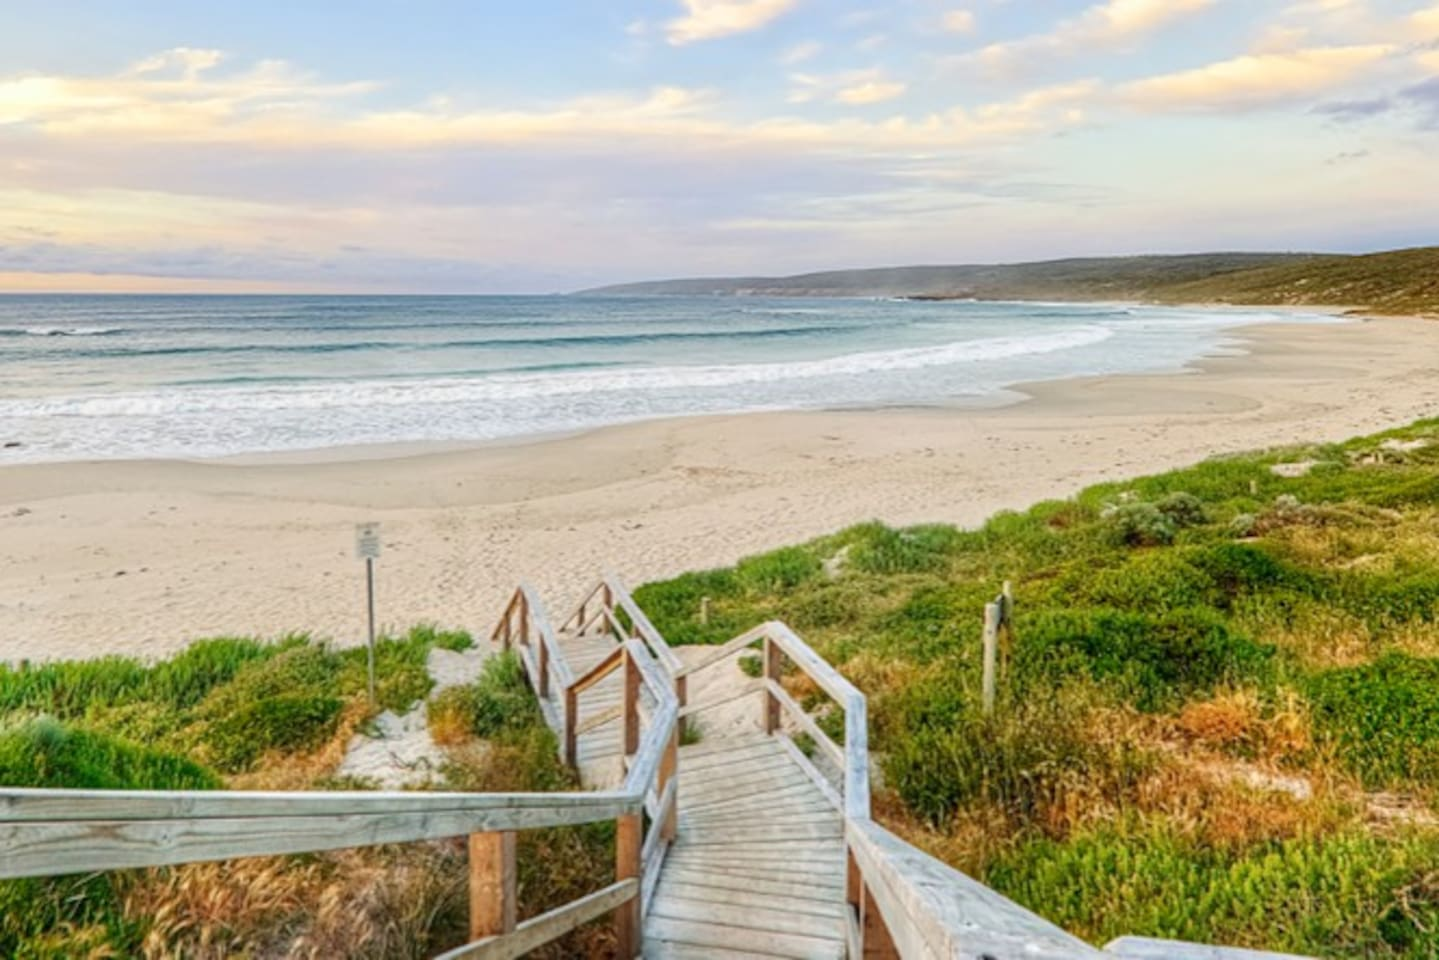 Your chalet is a short 50m walk away from pristine Smiths Beach